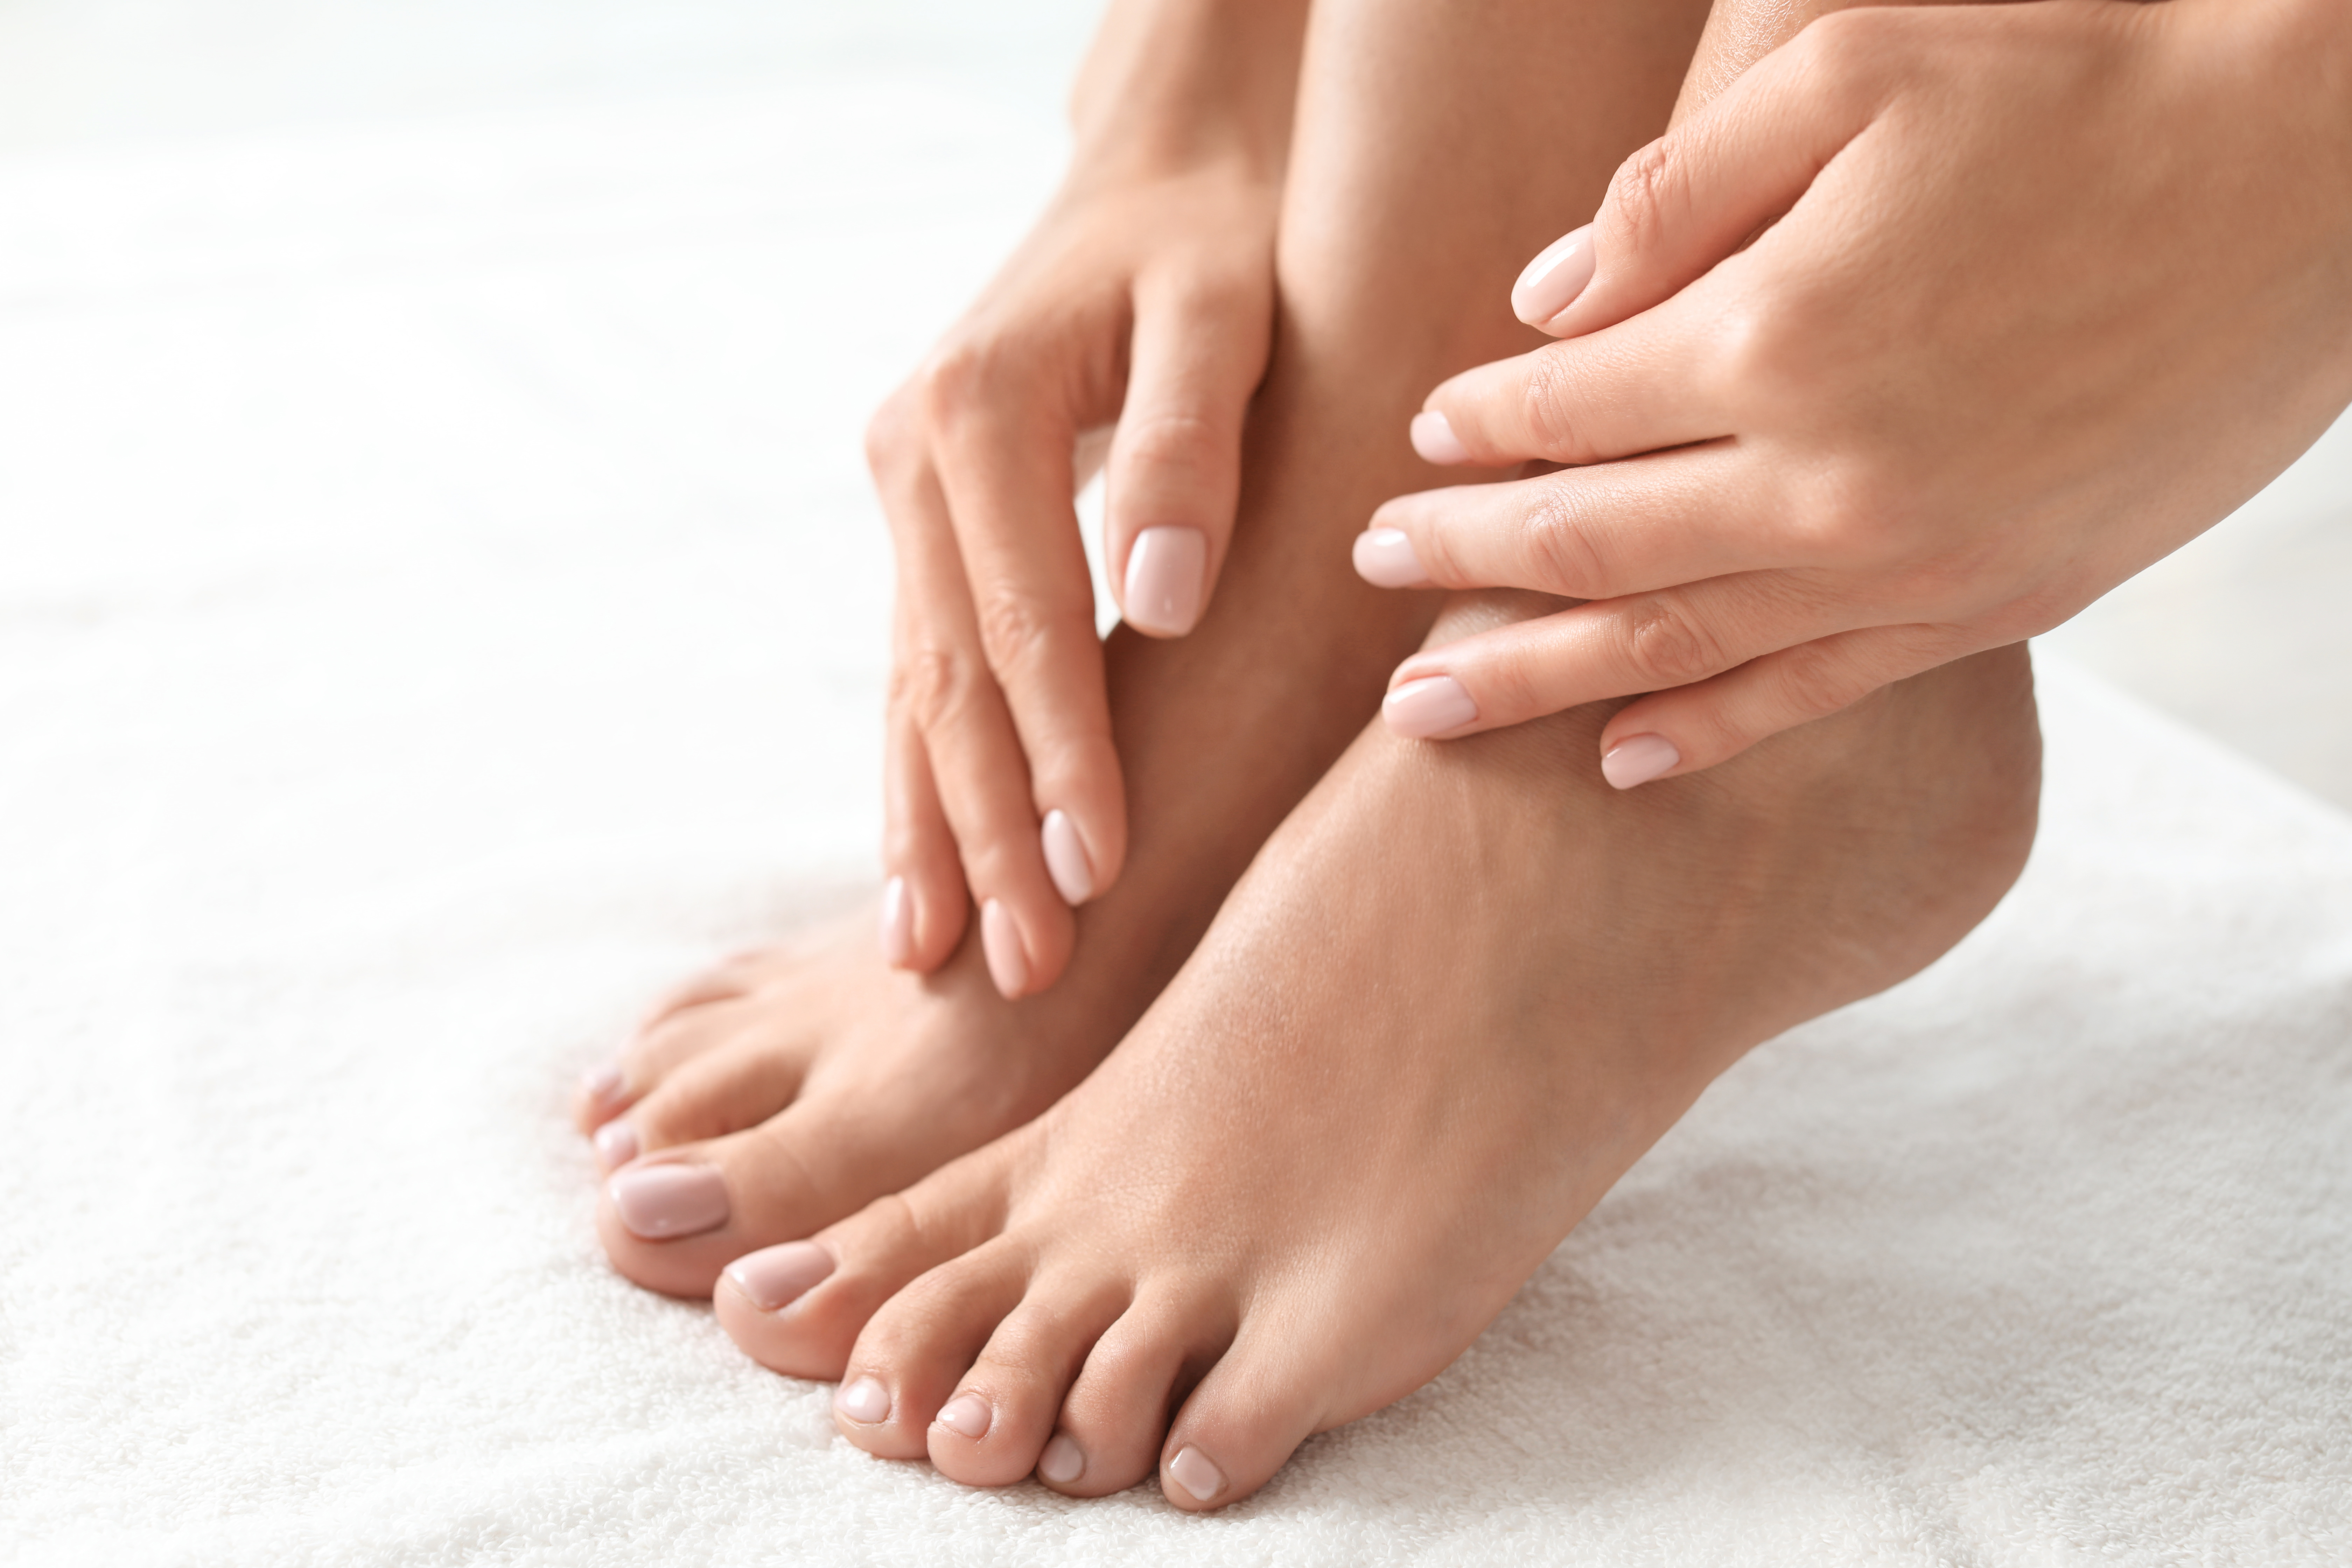 Woman with beautiful feet on white towel, closeup. Spa treatment